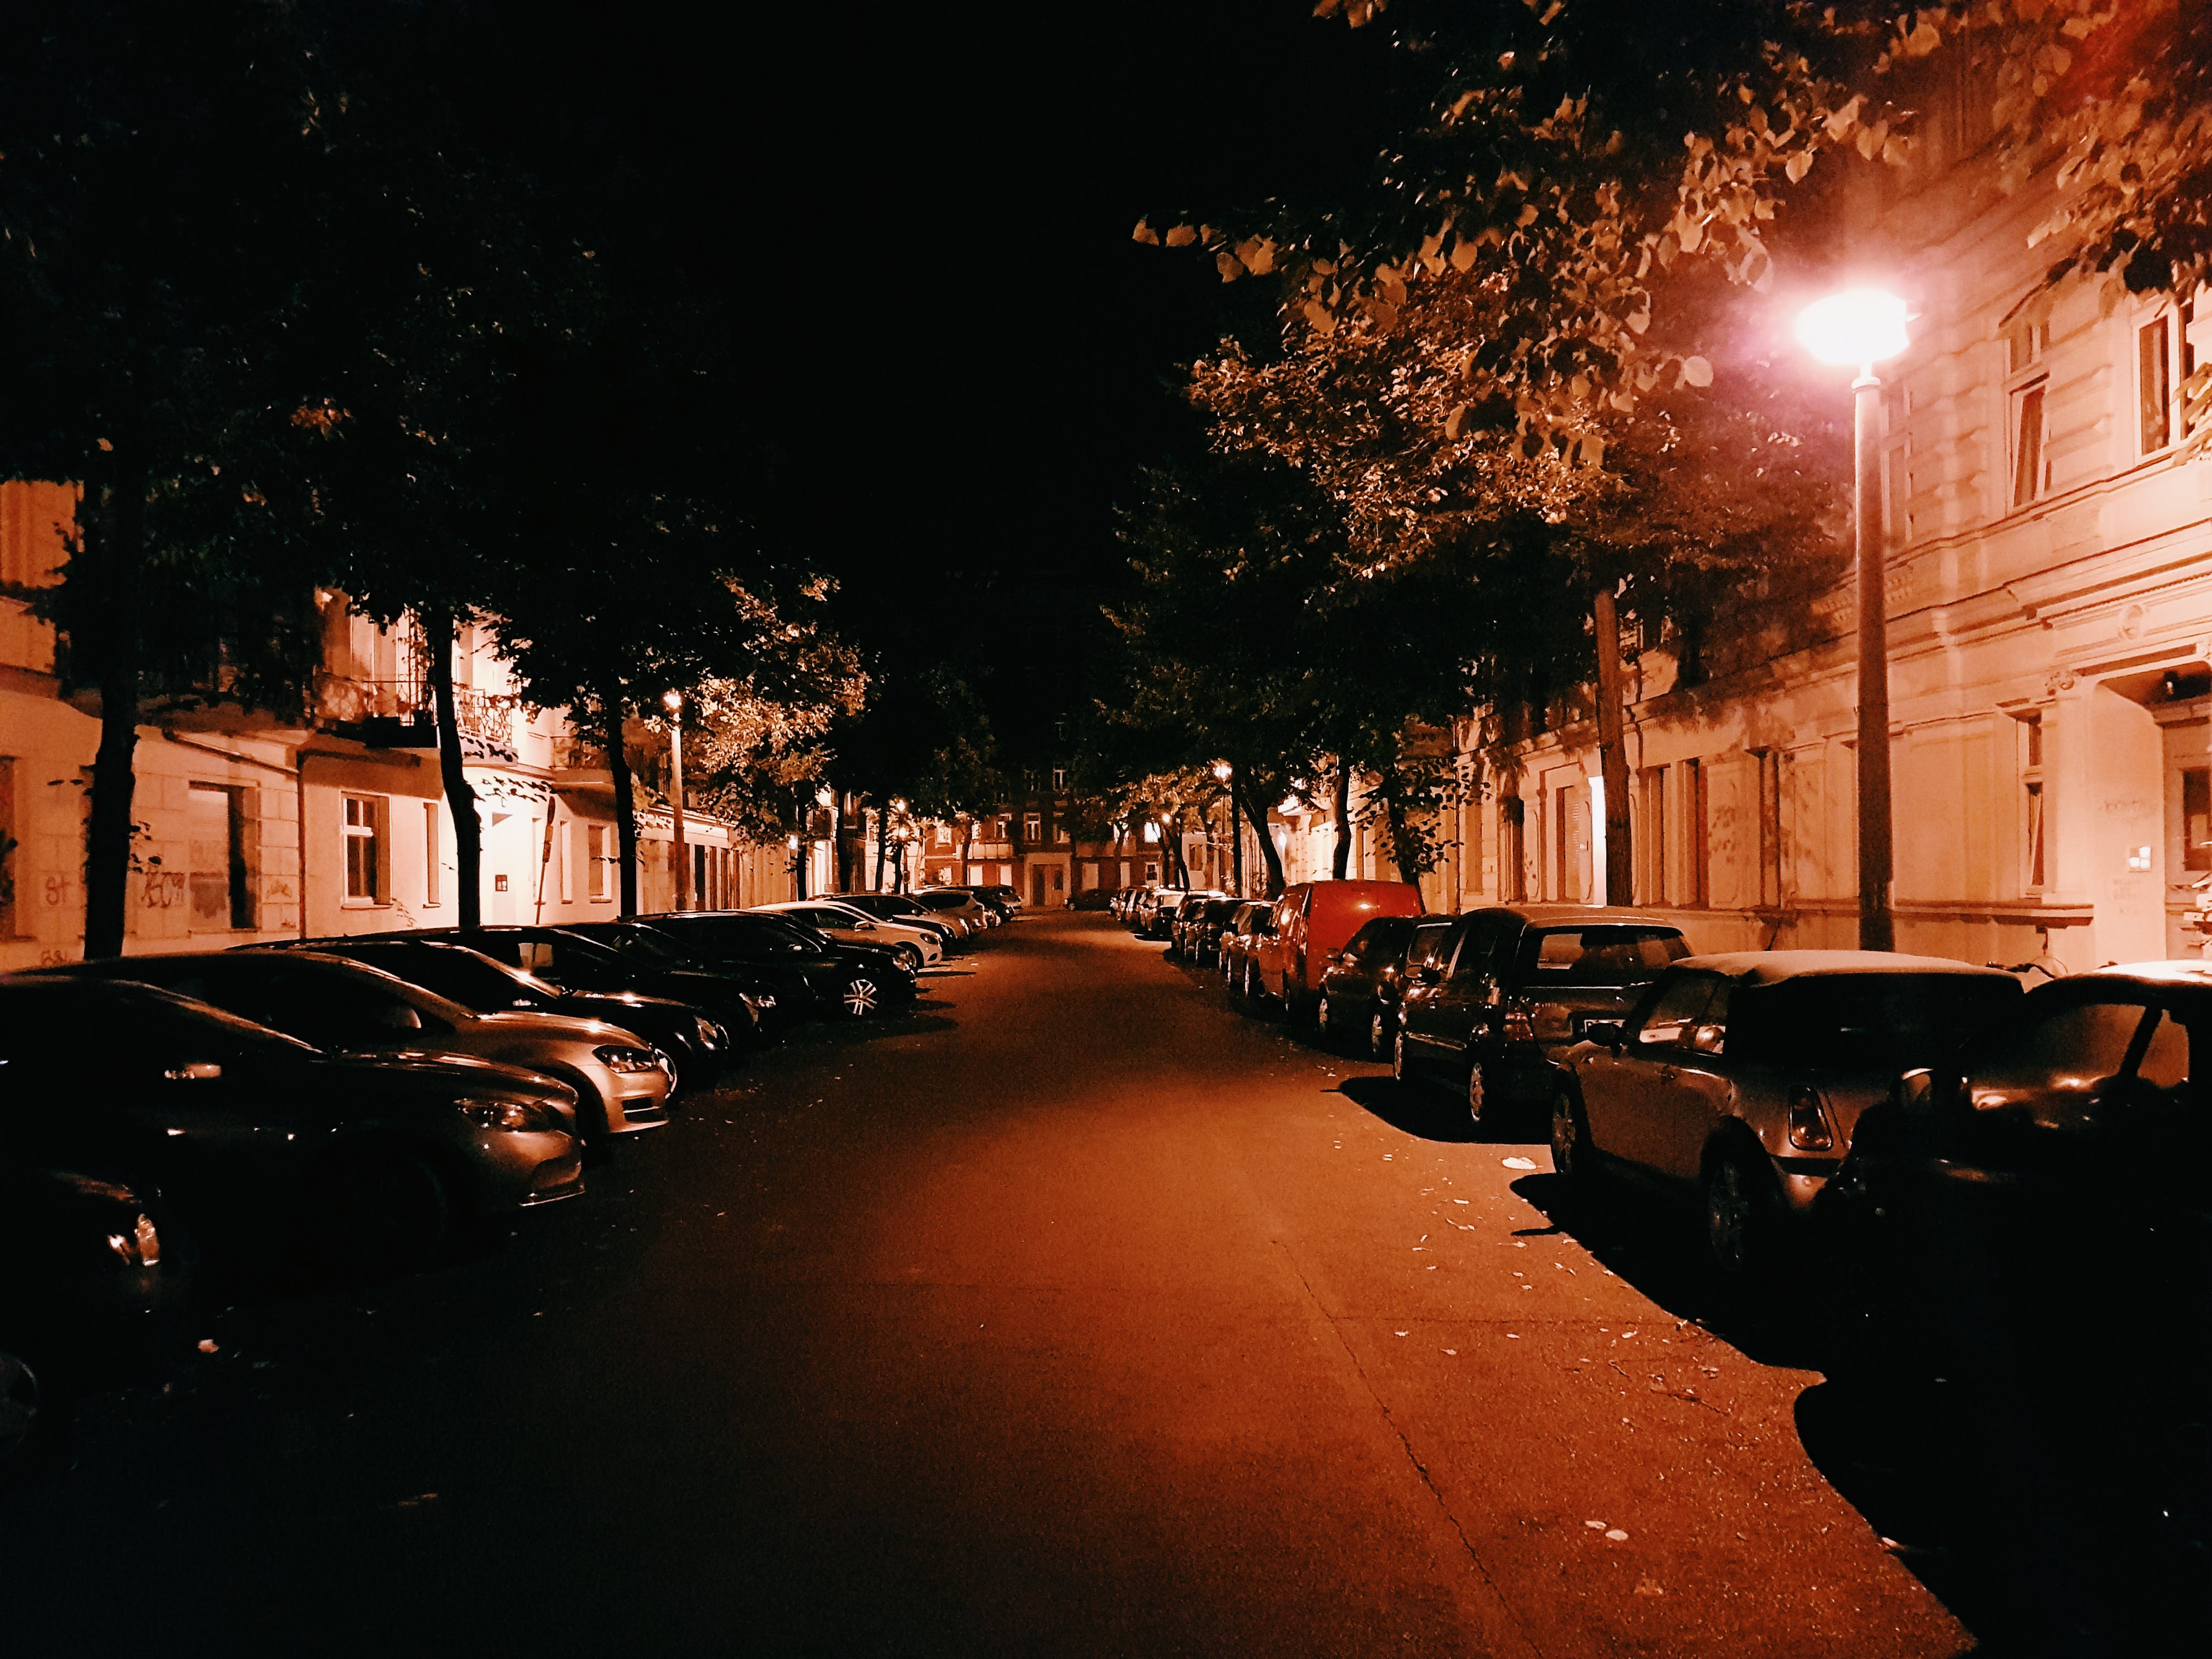 Assorted Cars Parking on Street during Nighttime